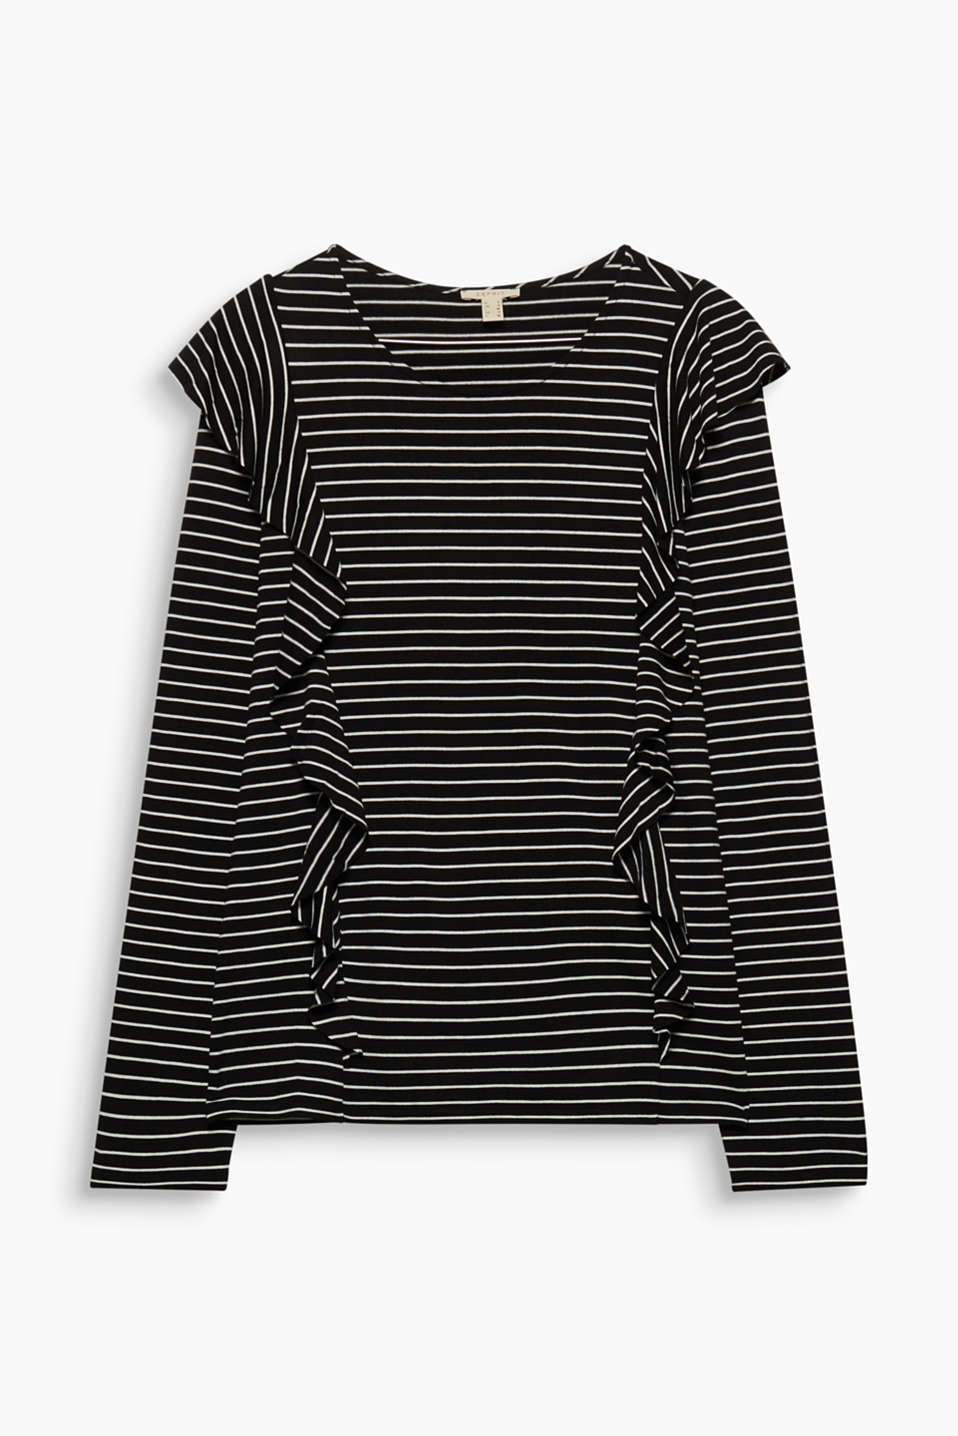 Striped and ruffled, this floaty long sleeve top with added stretch for comfort looks sporty and pretty at the same time!